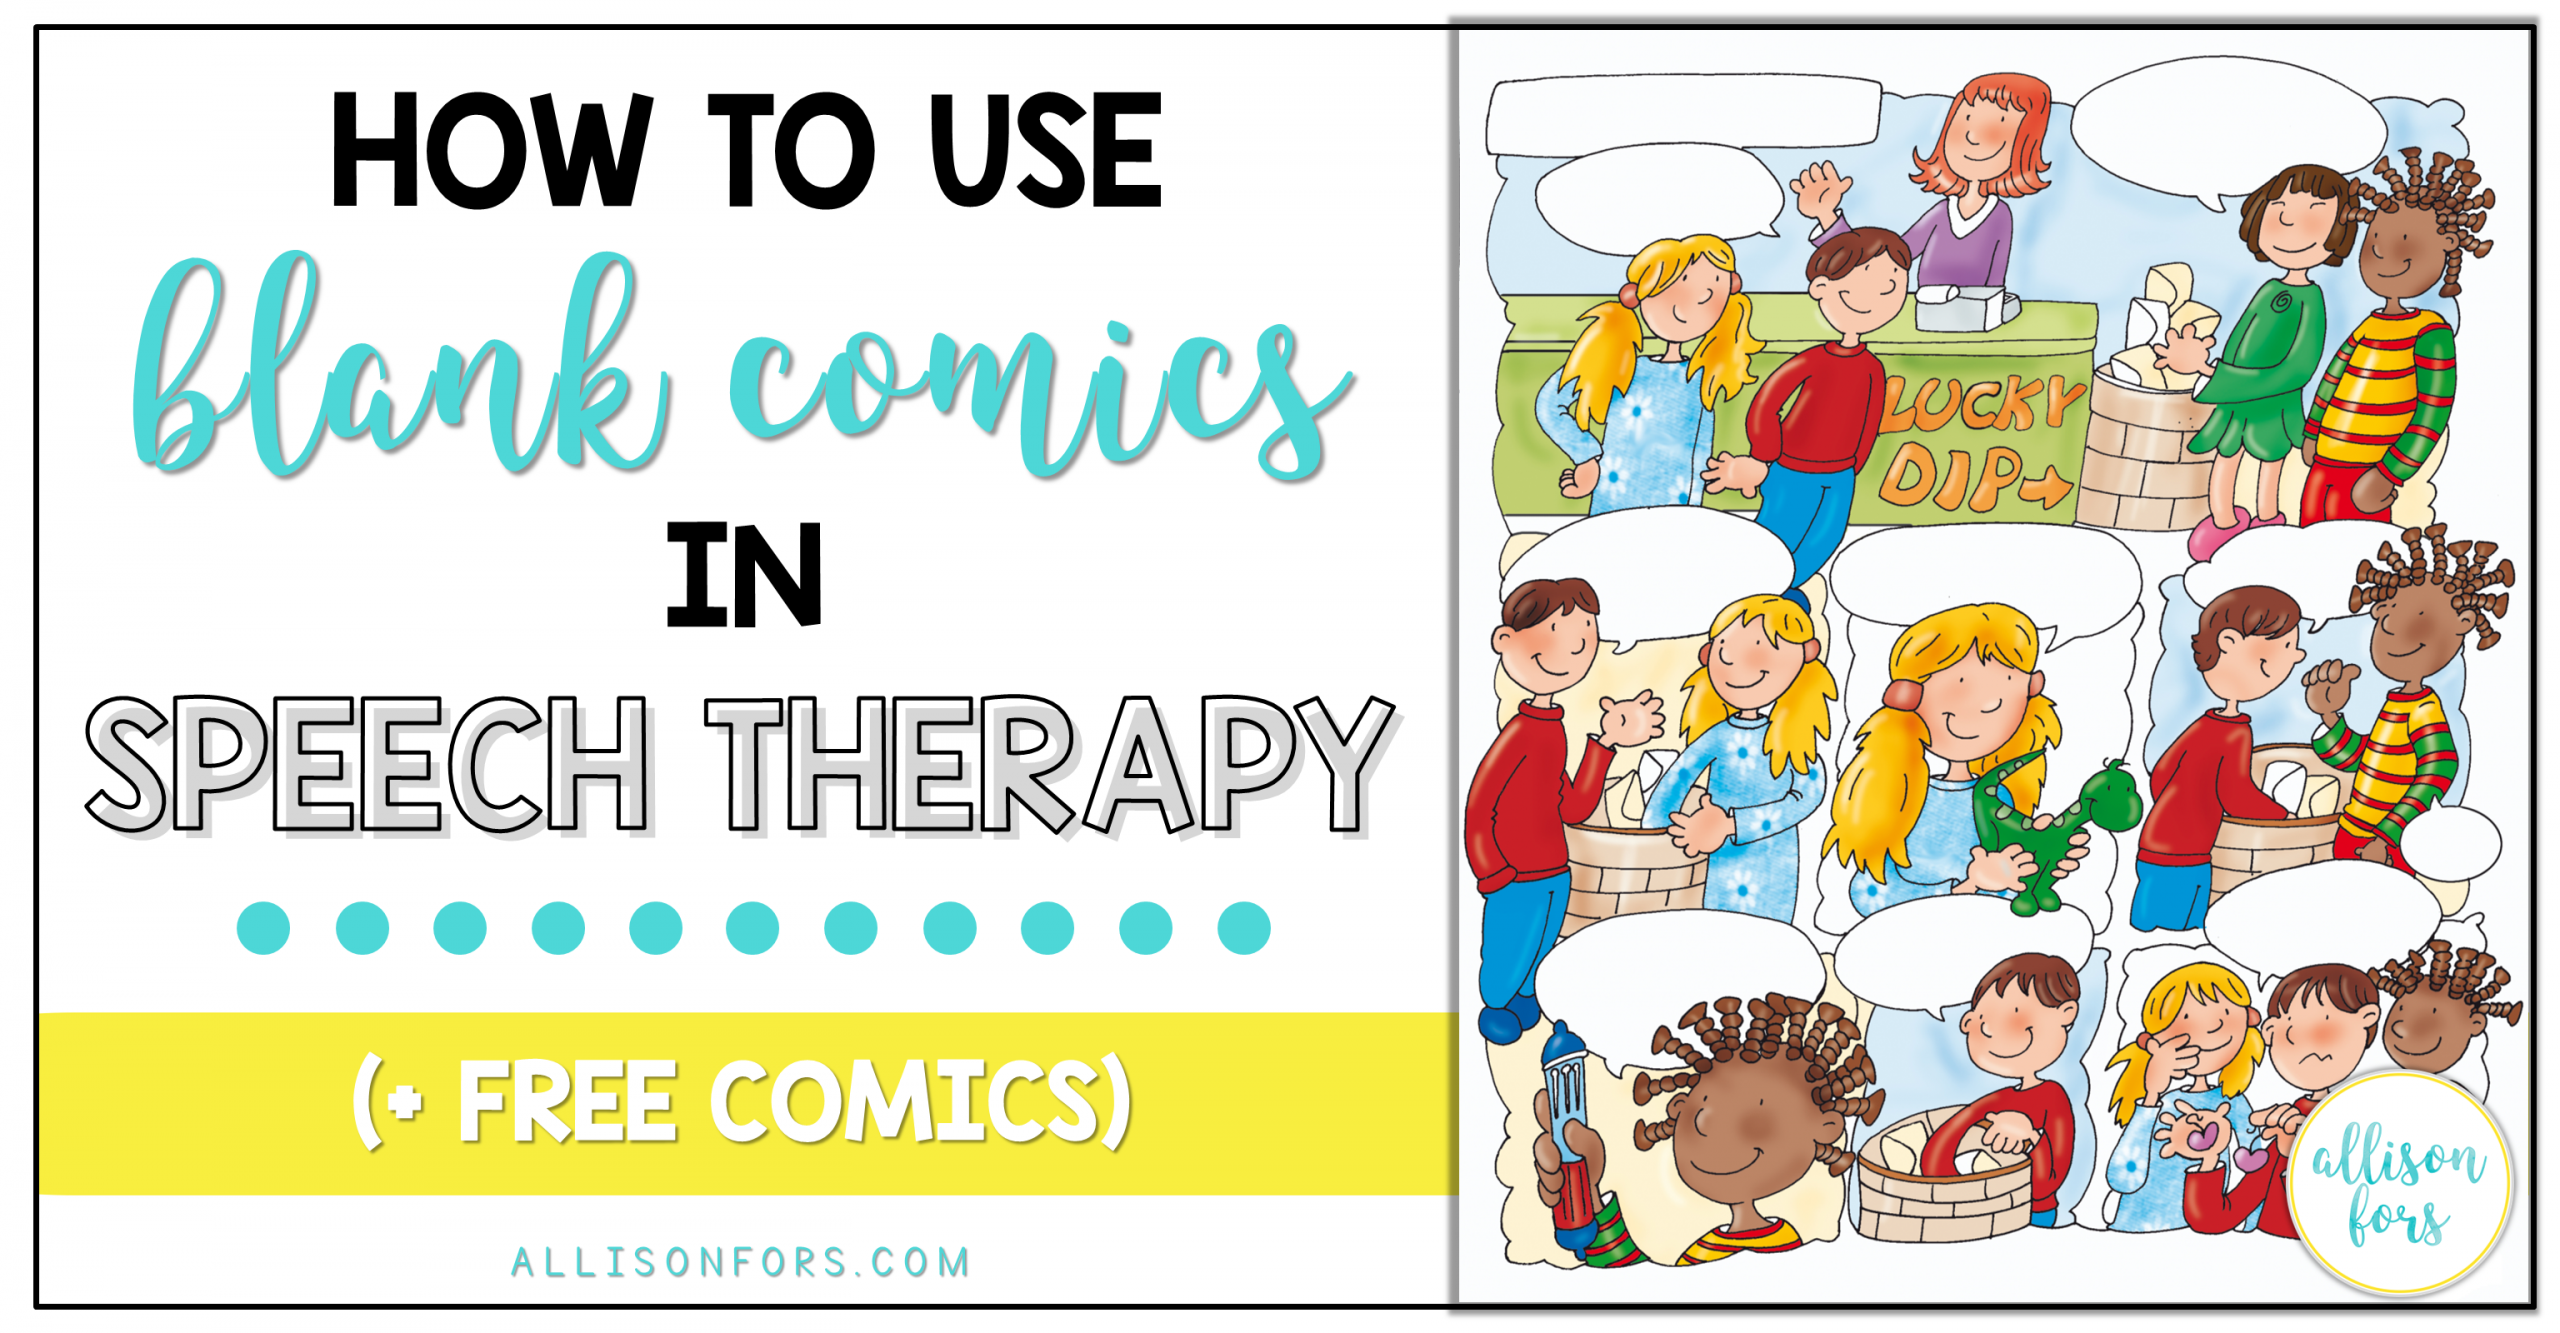 How To Use Blank Comics In Speech Therapy